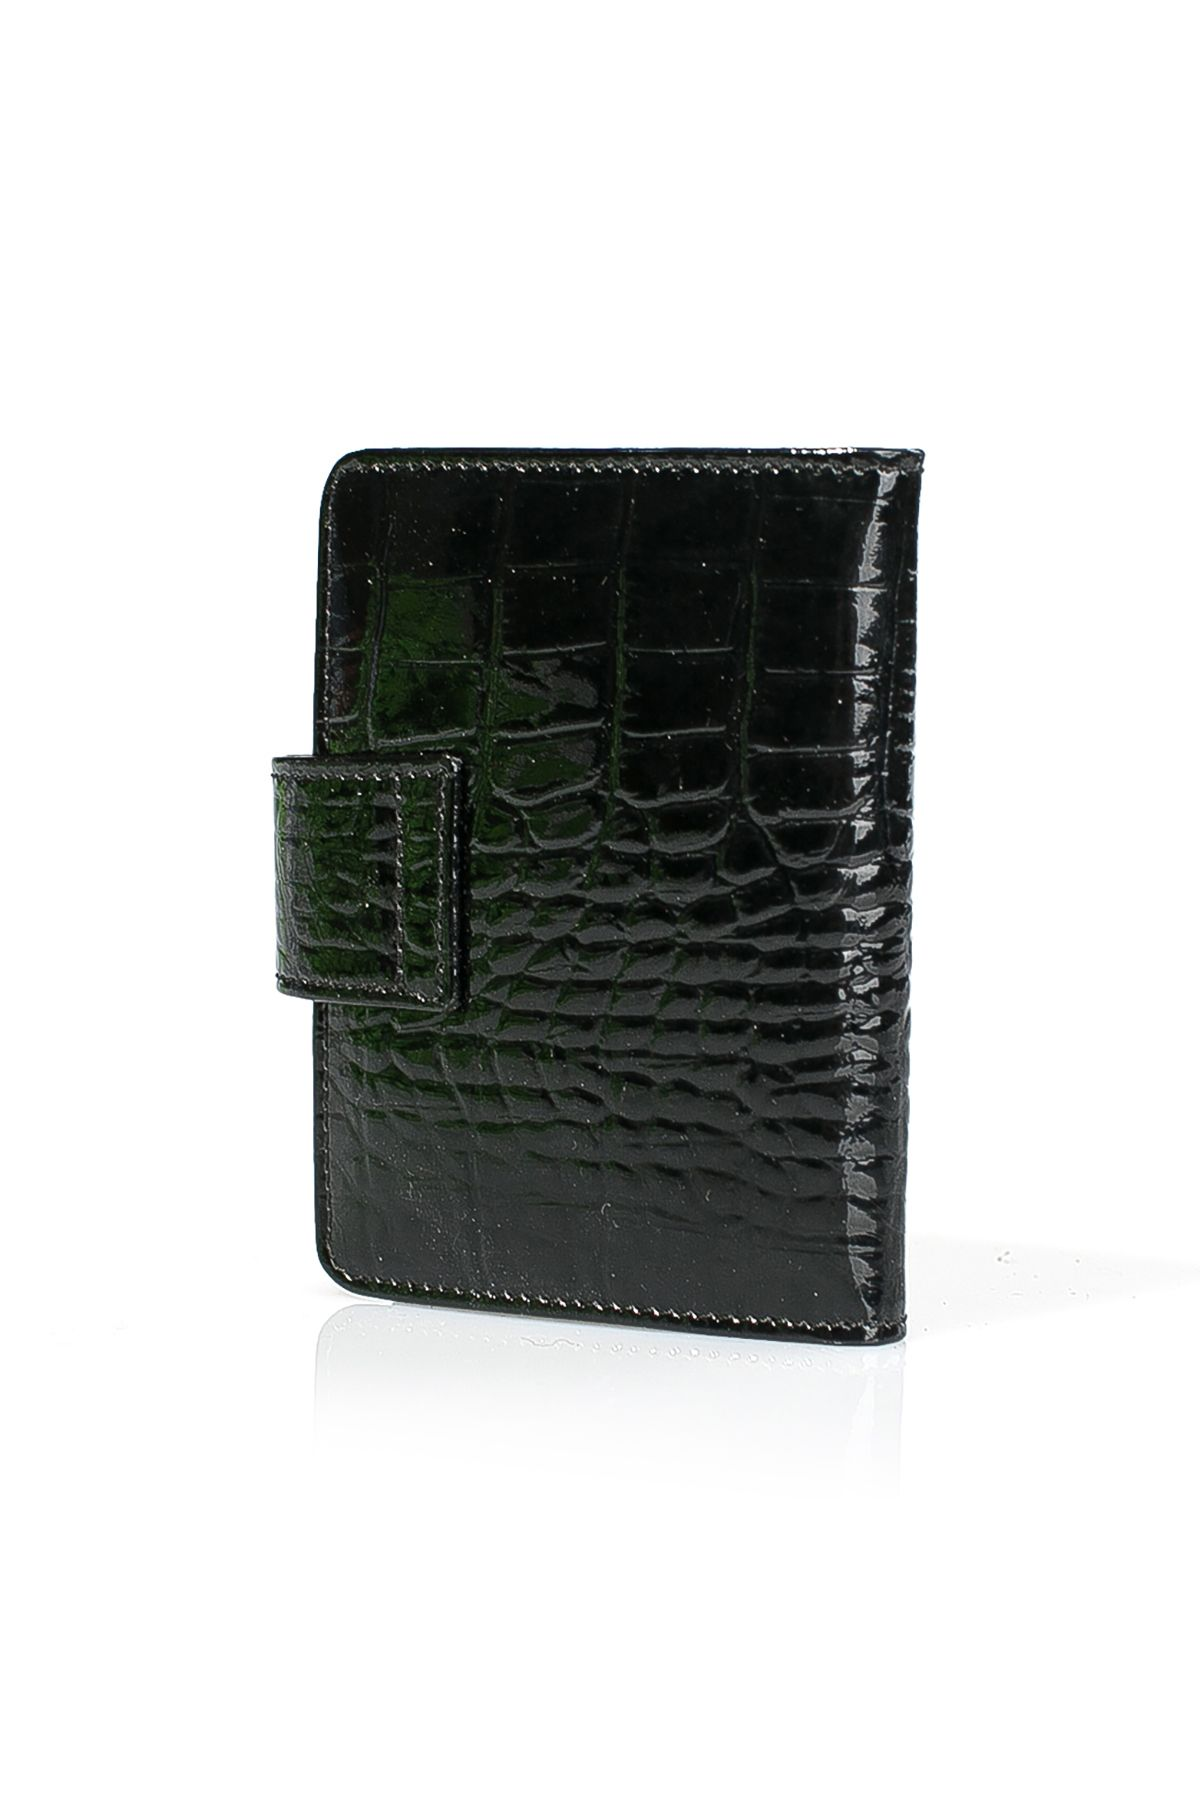 White Rabbit Wallet From Polished Leather With Snake Pattern Black